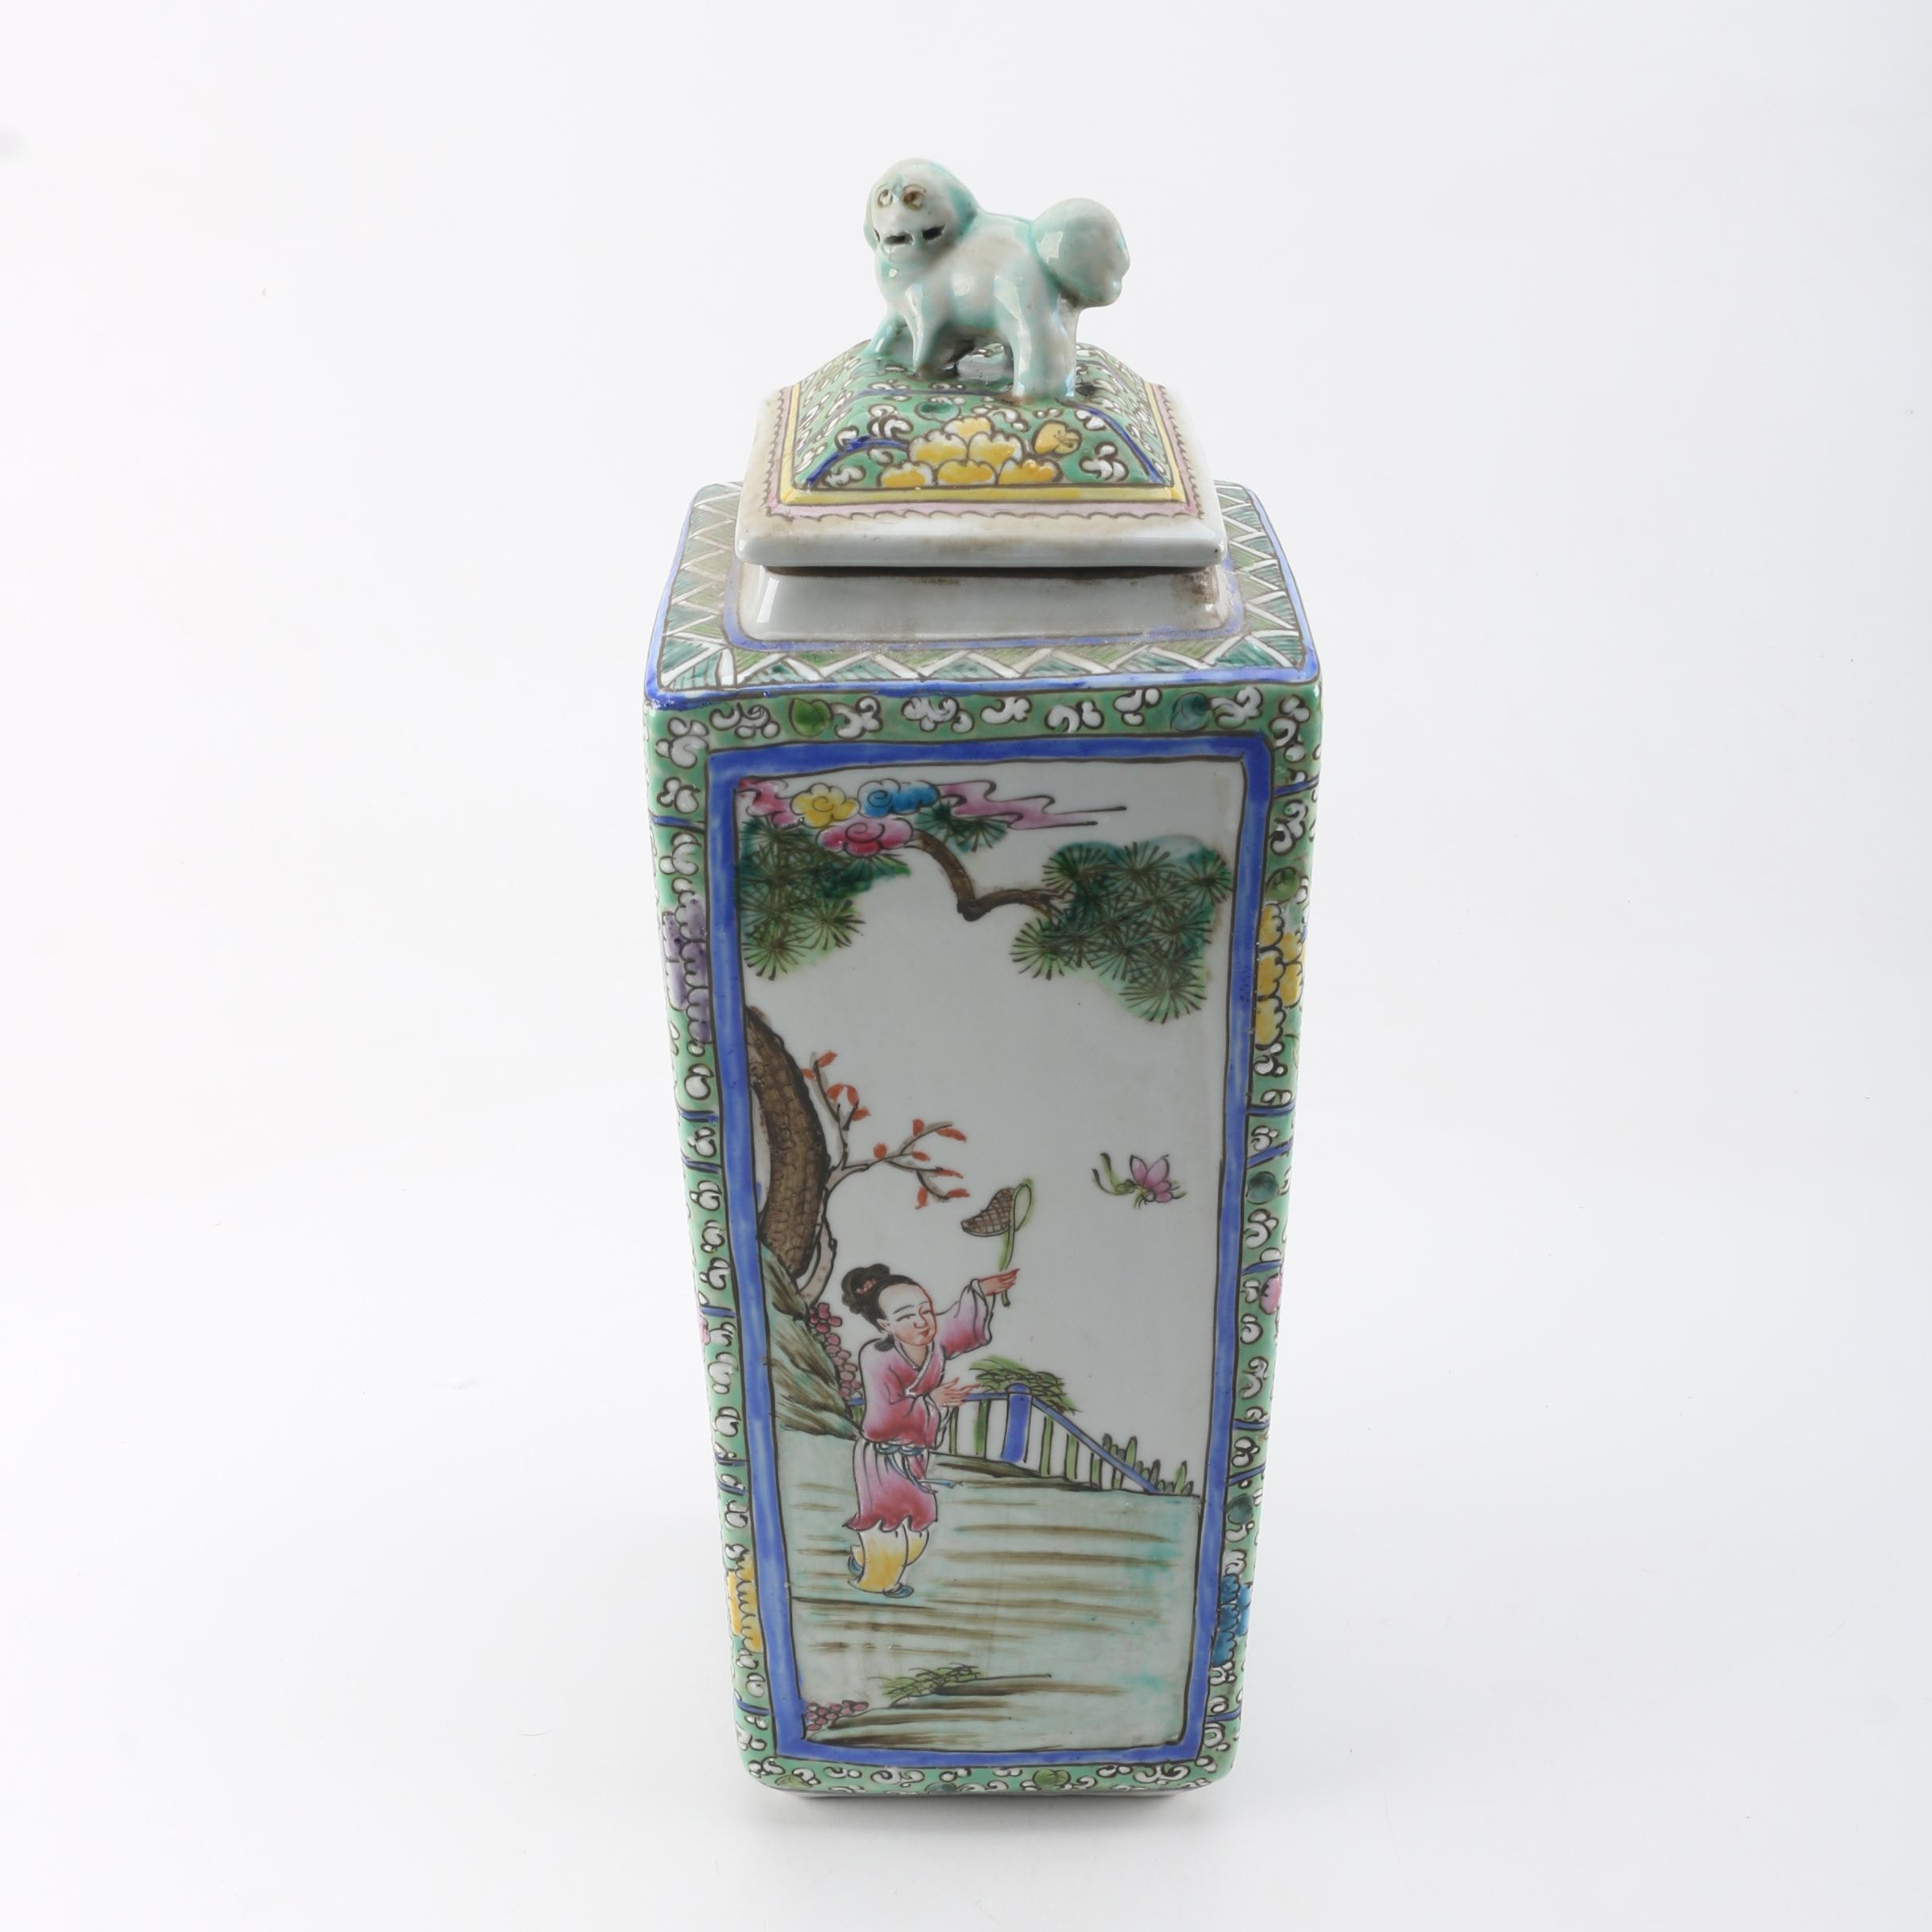 Chinese Famille Verte Style Urn